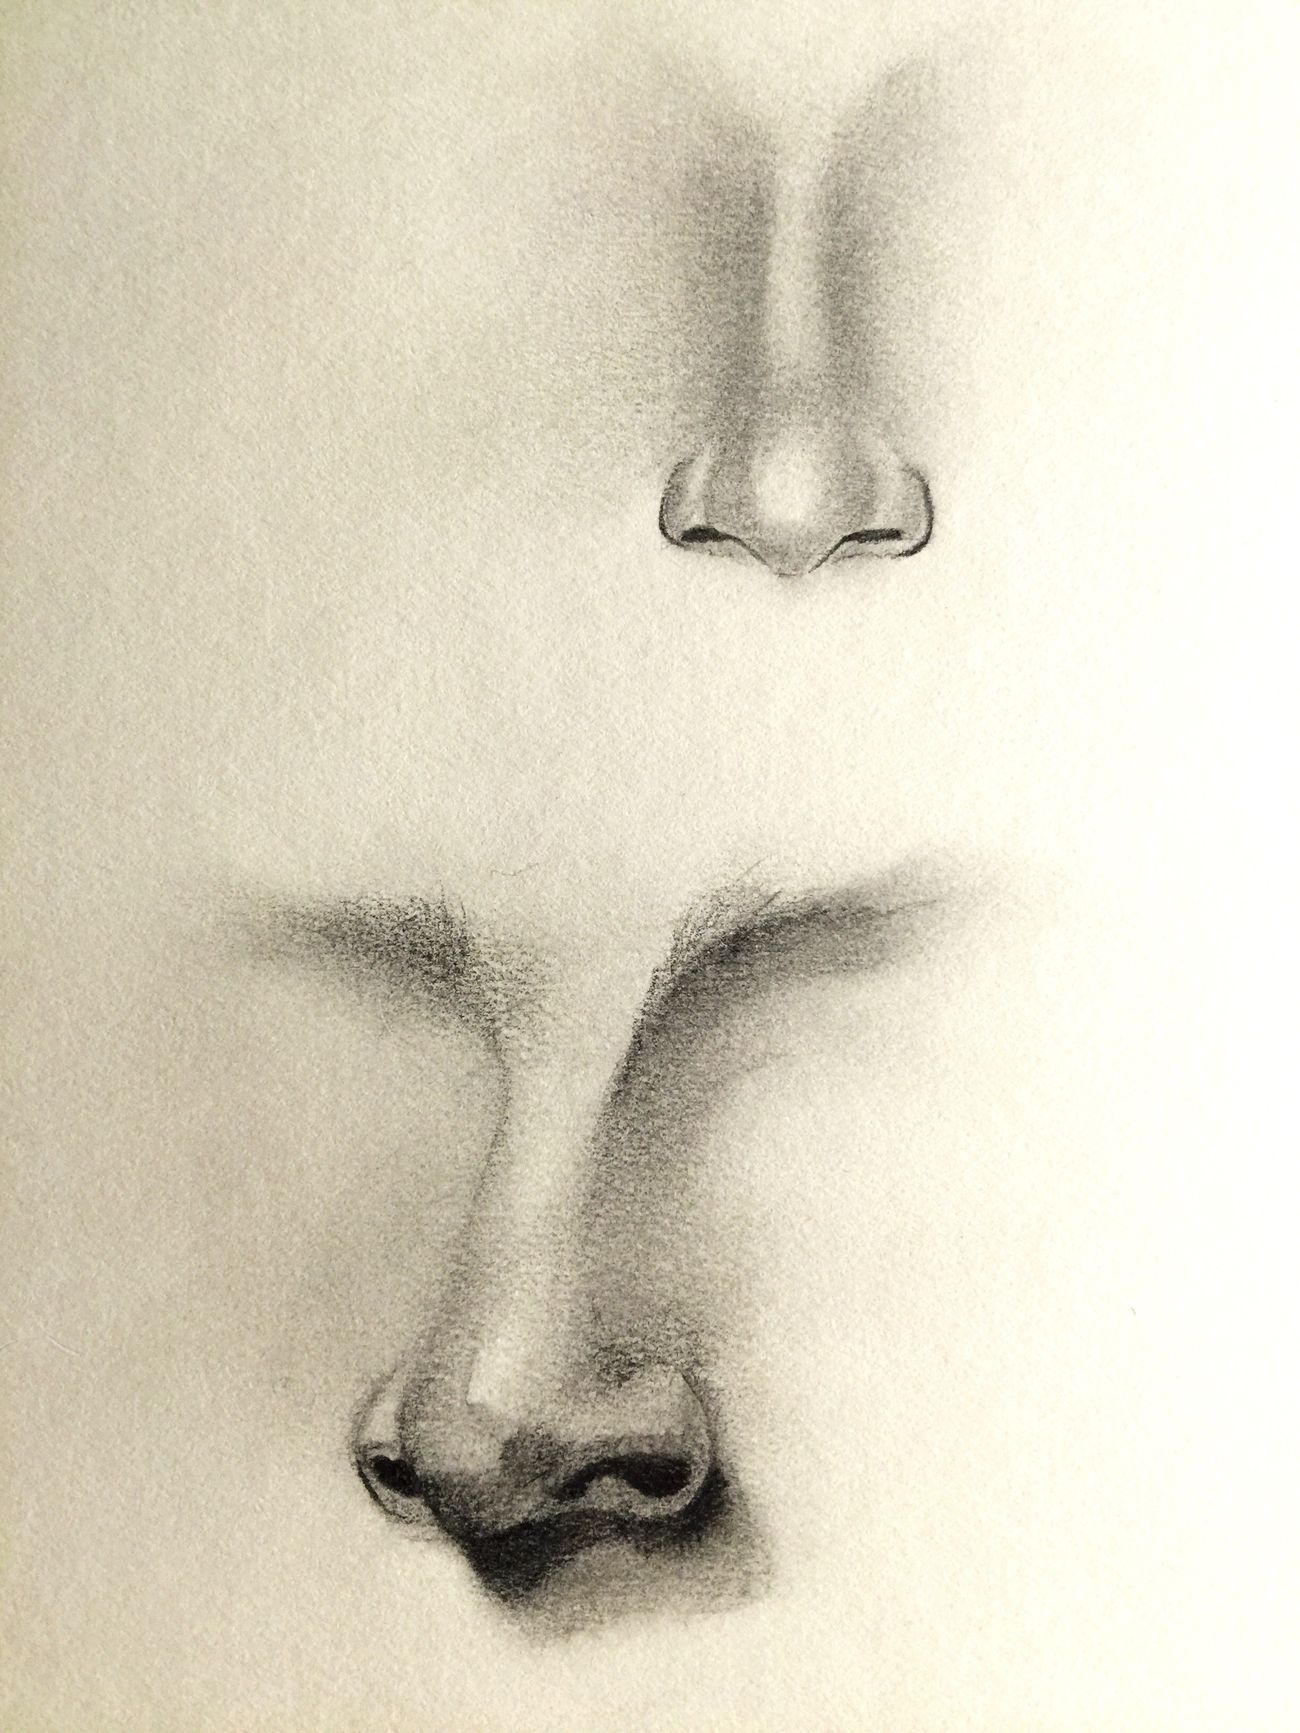 I haven't Doodled in years. Trying my hand at Noses